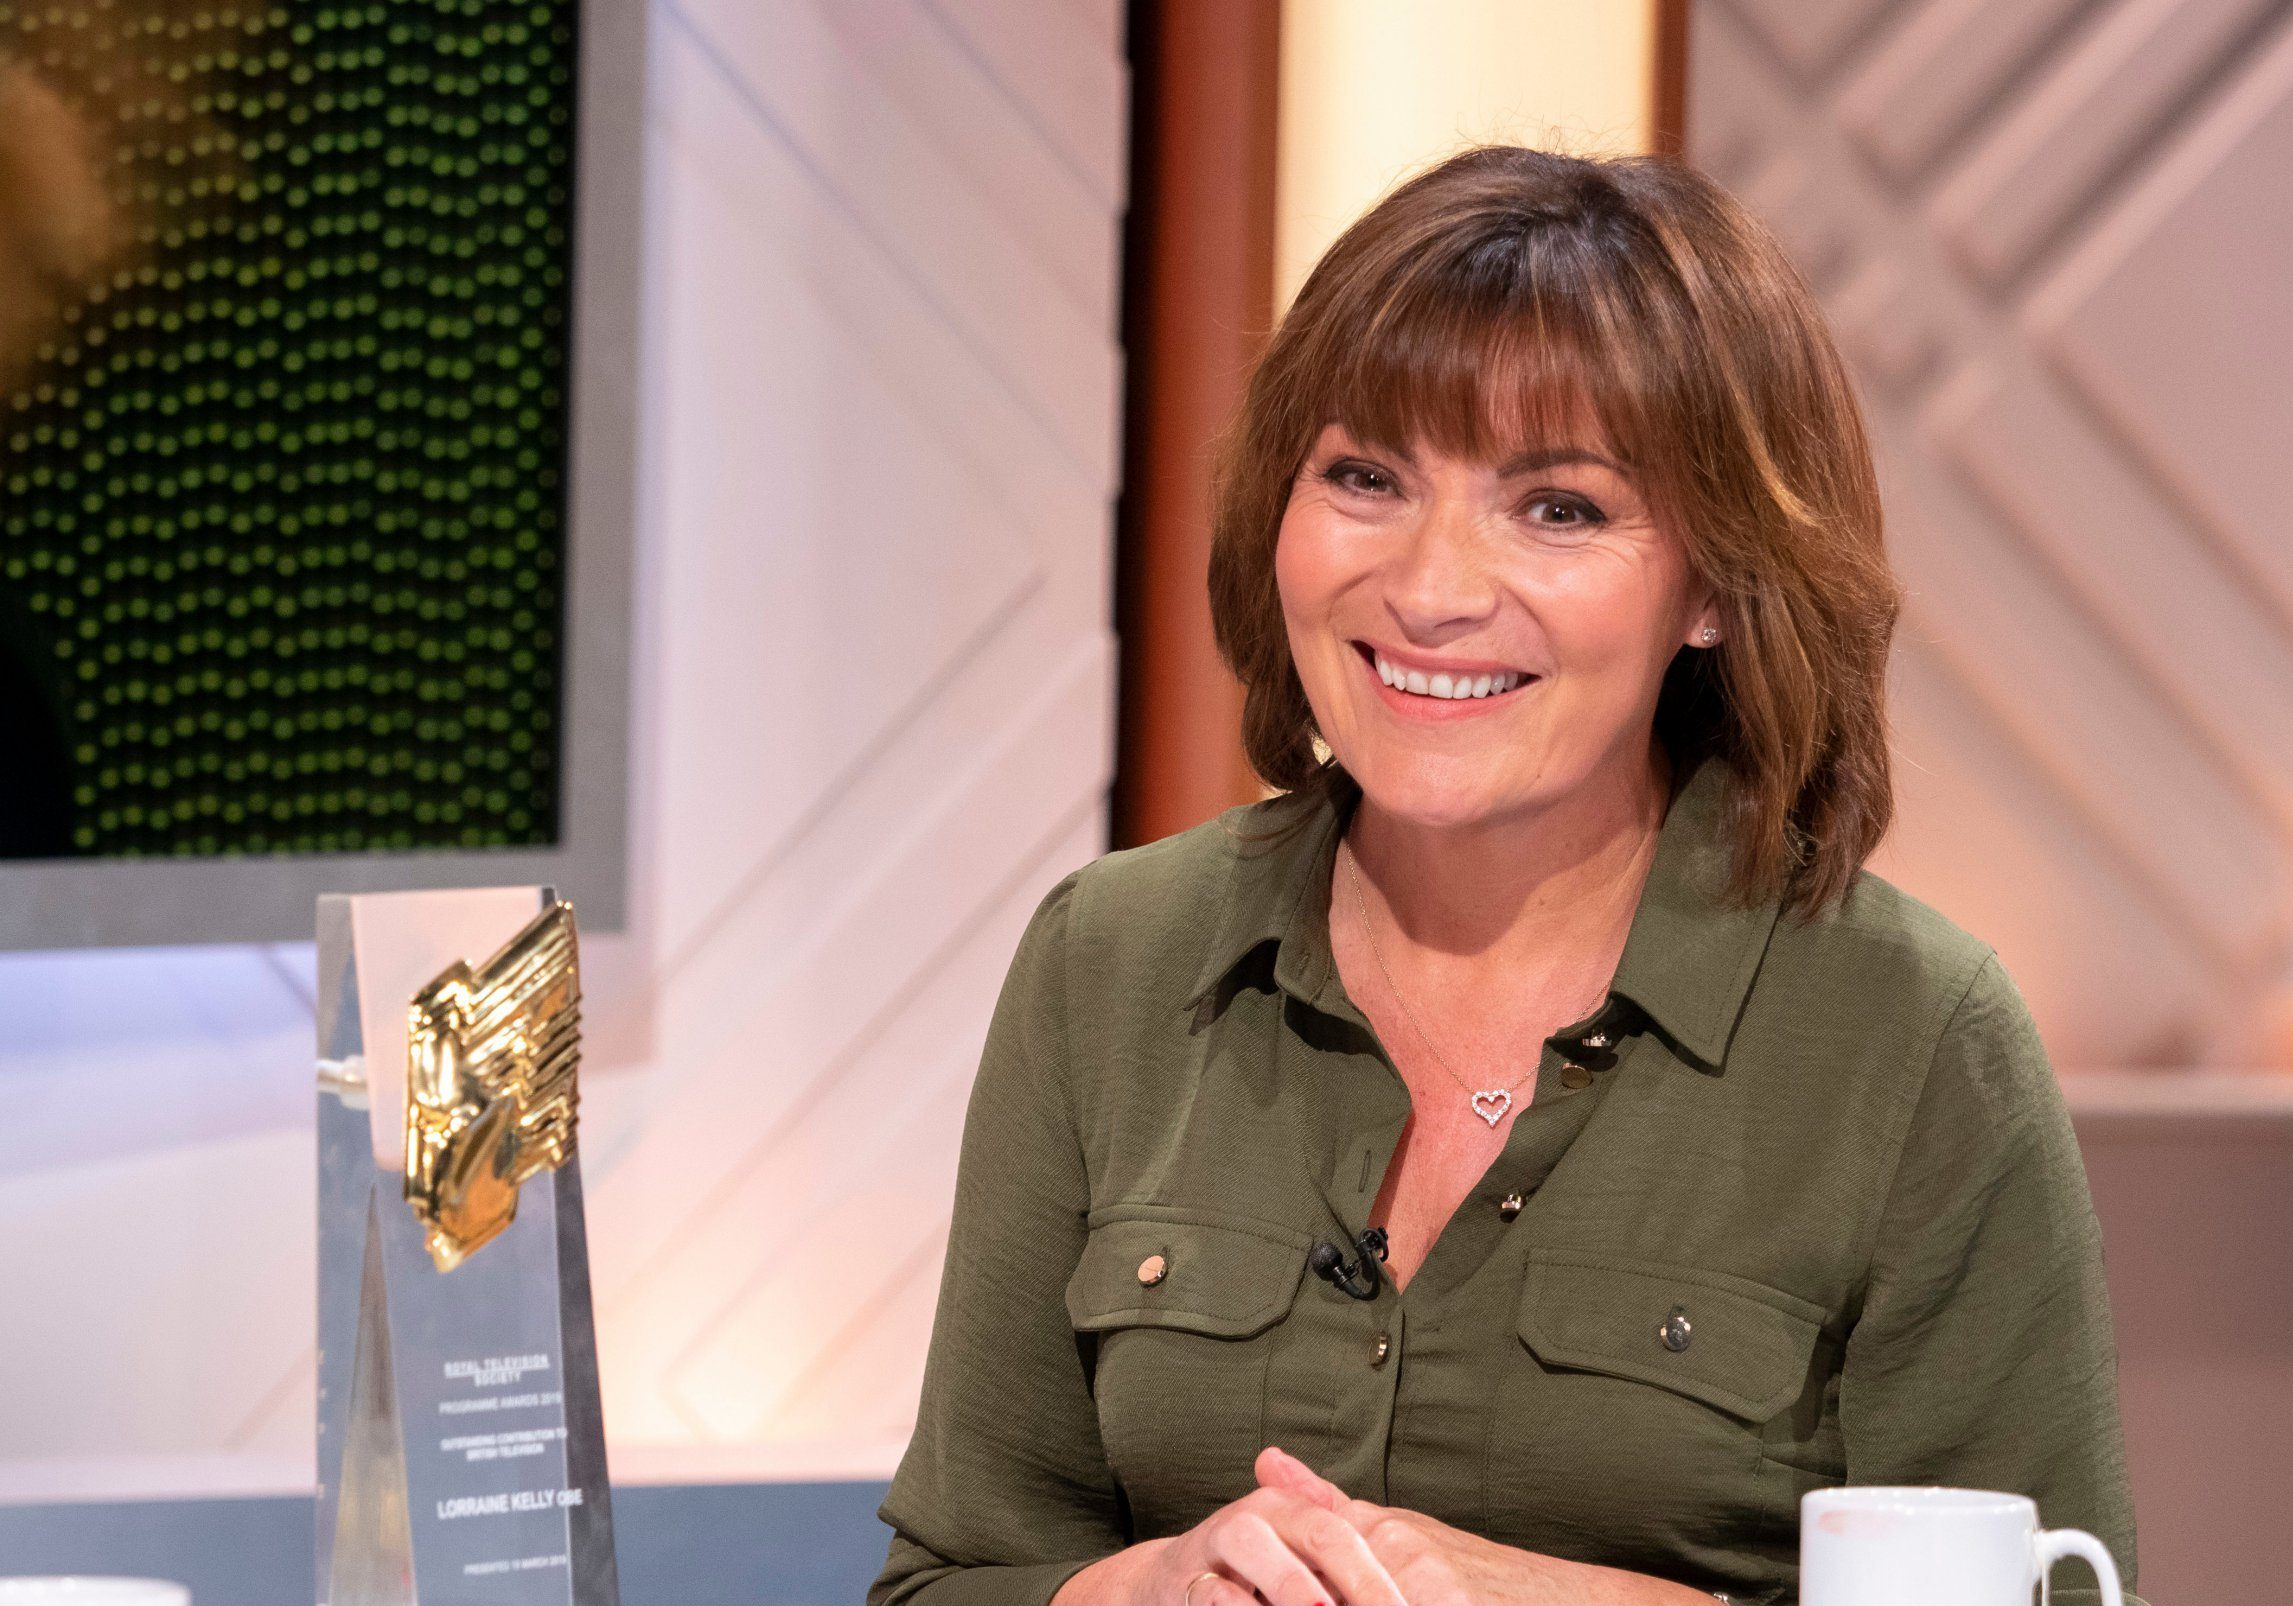 Editorial use only Mandatory Credit: Photo by Ken McKay/ITV/REX (10160926a) Lorraine Kelly 'Lorraine' TV show, London, UK - 20 Mar 2019